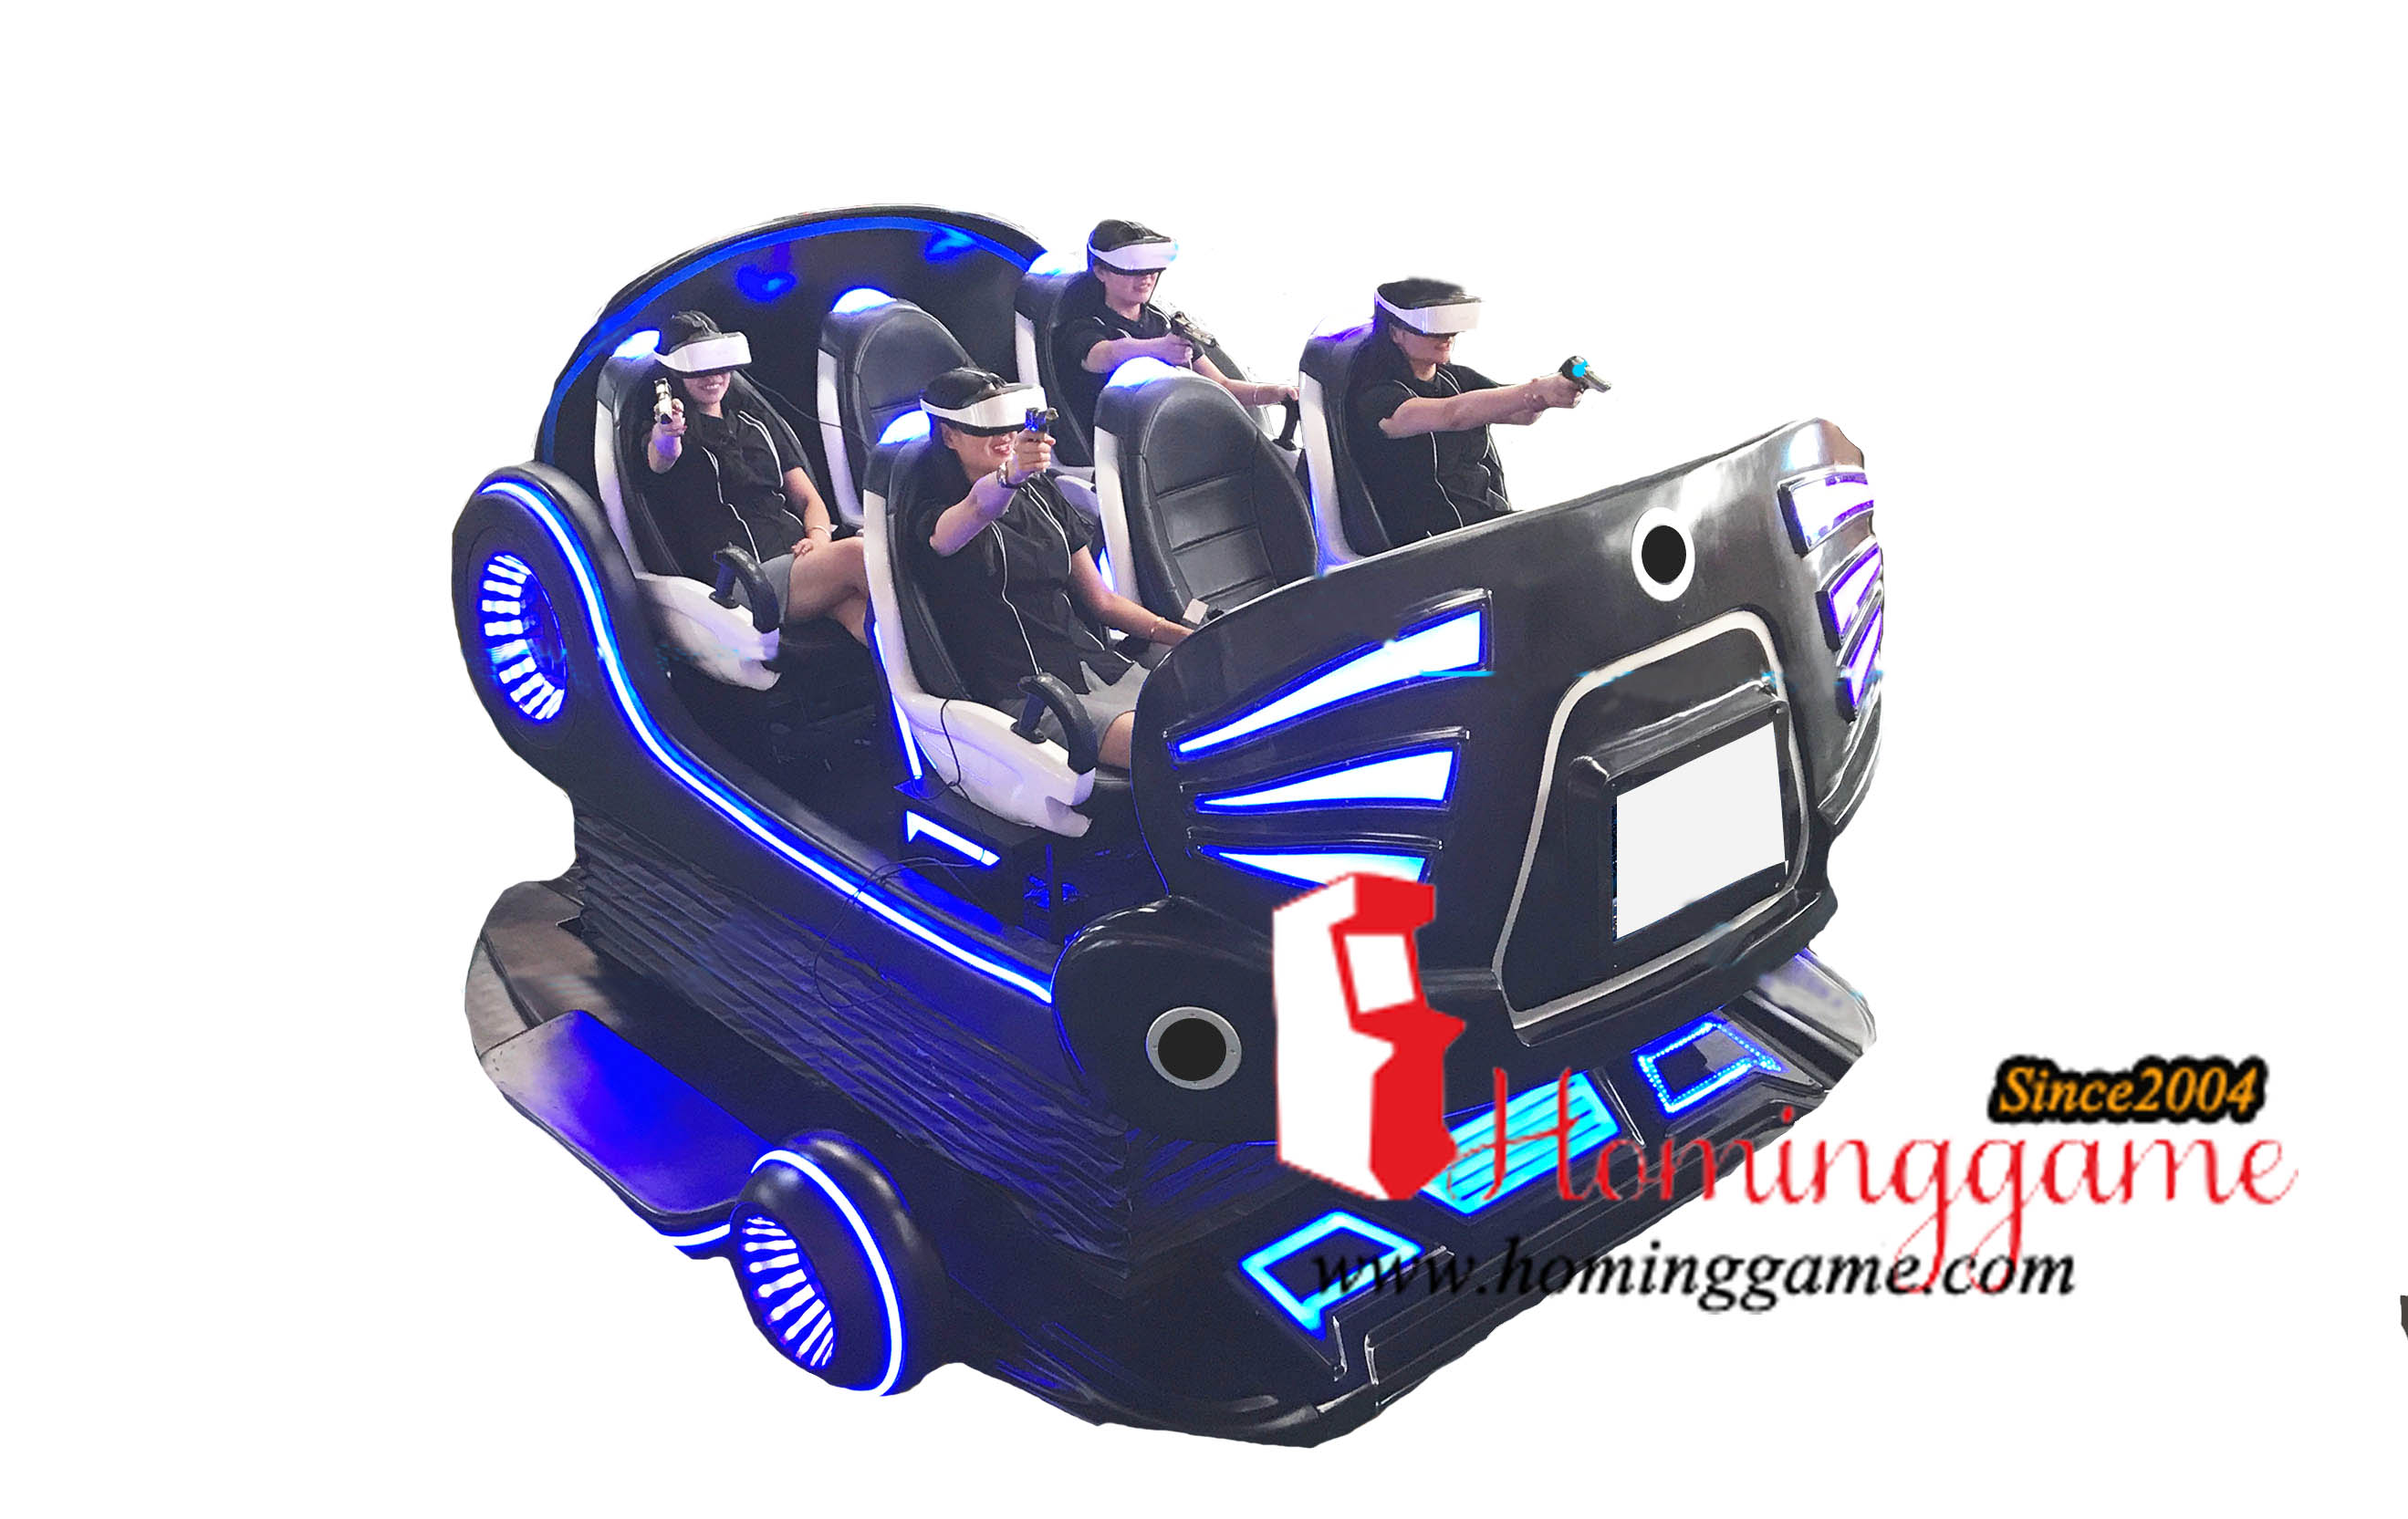 2018 Hot 6 Seats 9D VR Cineam Theater,9D VR Cinema,9D VR theater,9D theater,2018 Hot 3 Seats 9D VR Egss Reality Game Machine,2 Seats 9D VR Egg Reality Game Machine,9D VR Cinema Egg Game,9D VR game,VR Game,9D VR,VR game machine,9D VR cinema,9D VR theater,9D,9D Machine,VR Egg,Single VR egg,Double 9D VR egg, 3 Player 9D VR egg,9D VR Bike,9D VR 6 seats Theater,6 seats VR theater,9D Cinema,9D racing Car Game Machine,9D VR gun shooting game machine,9D VR airplane,9D VR simulator game machine,Game Machine,Arcade Game Machine,Coin Operated Game Machine,Amusement park game machine,Simulator game machine,Indoor game machine,Family Entertainment,Entertainment game machine